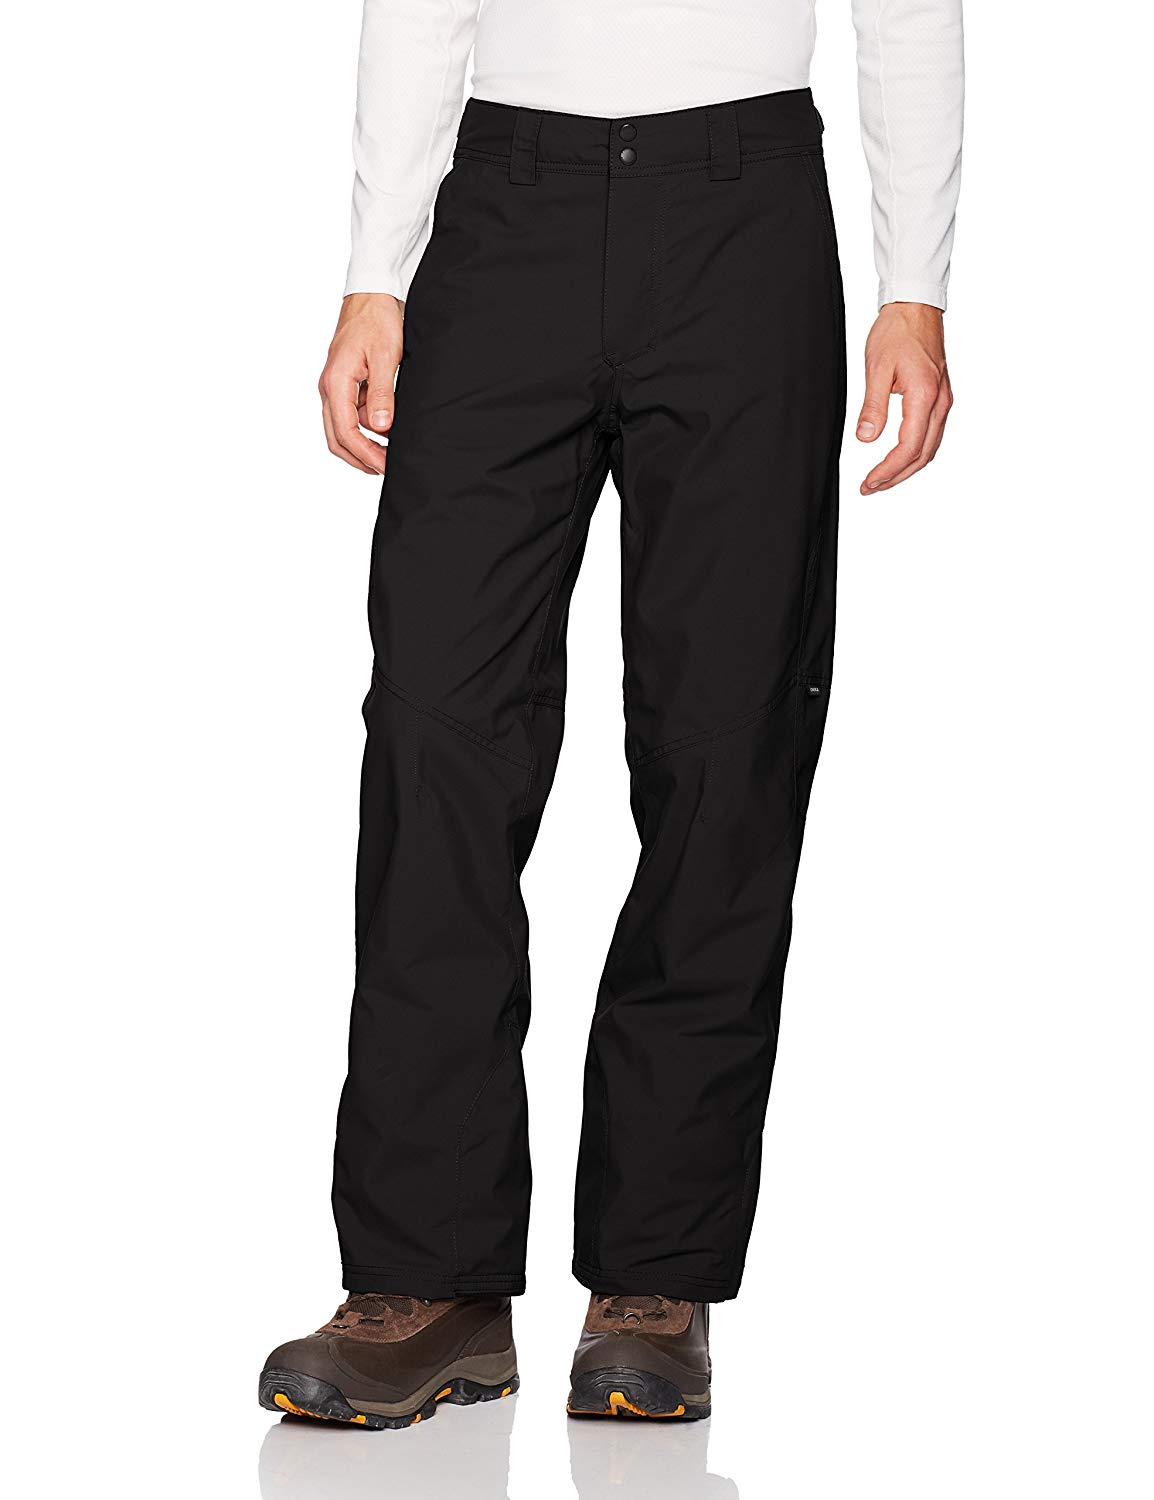 Pants hammer for men recommend dress in on every day in 2019